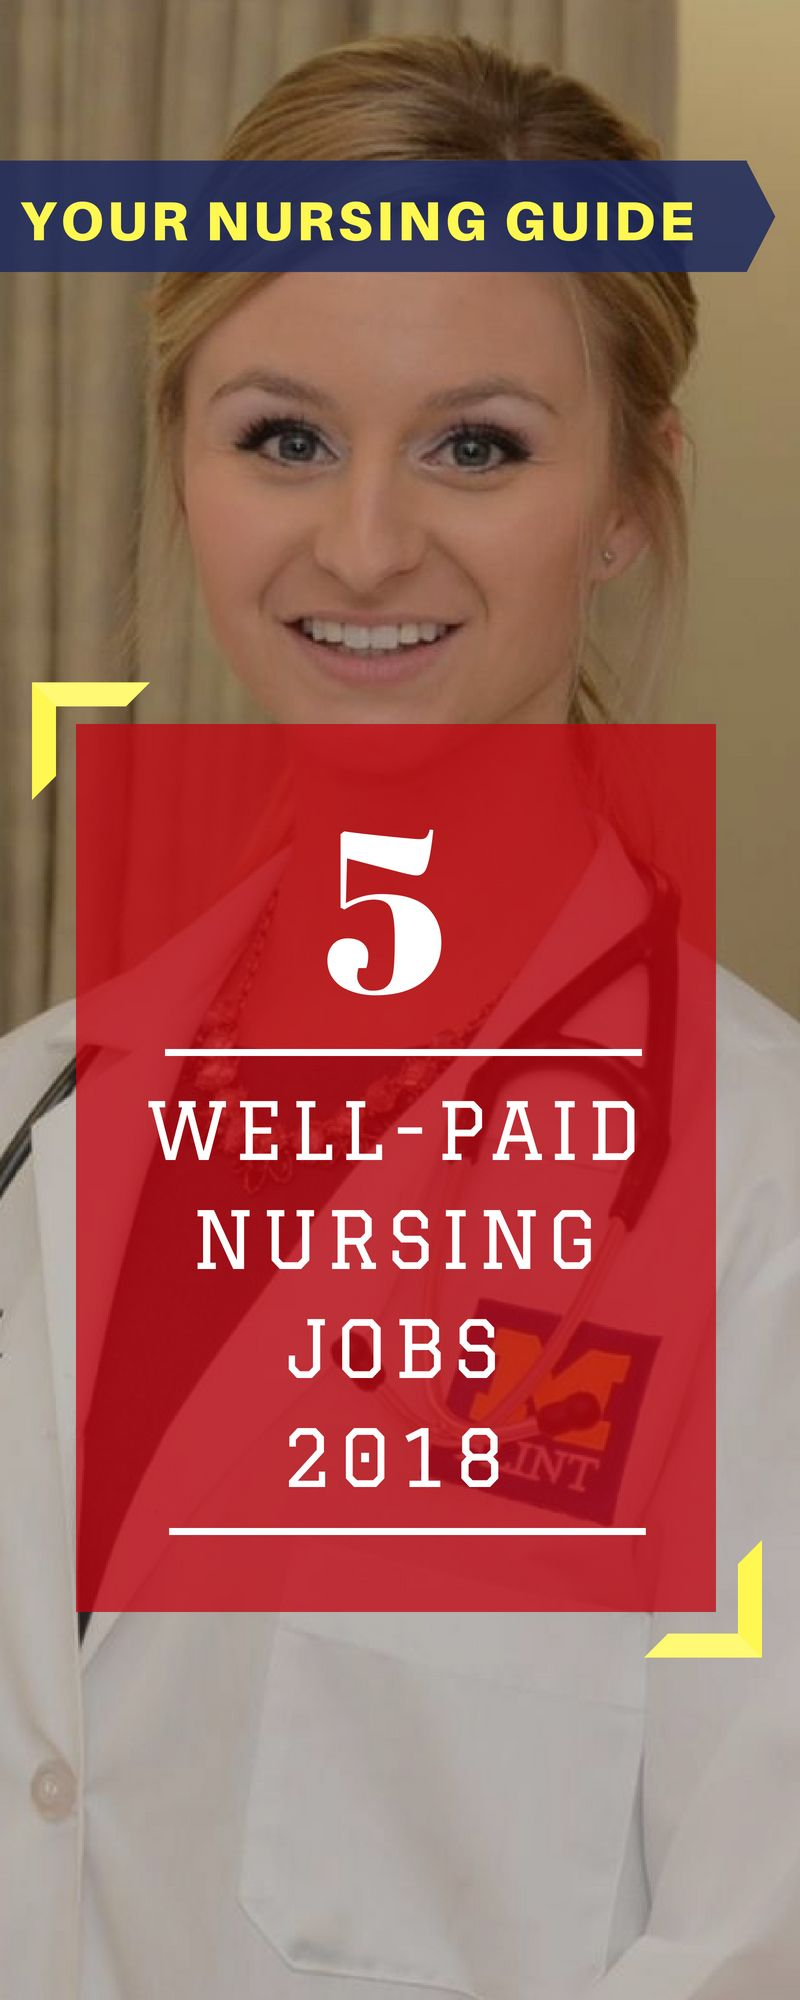 When you first decided to a nurse, you might have